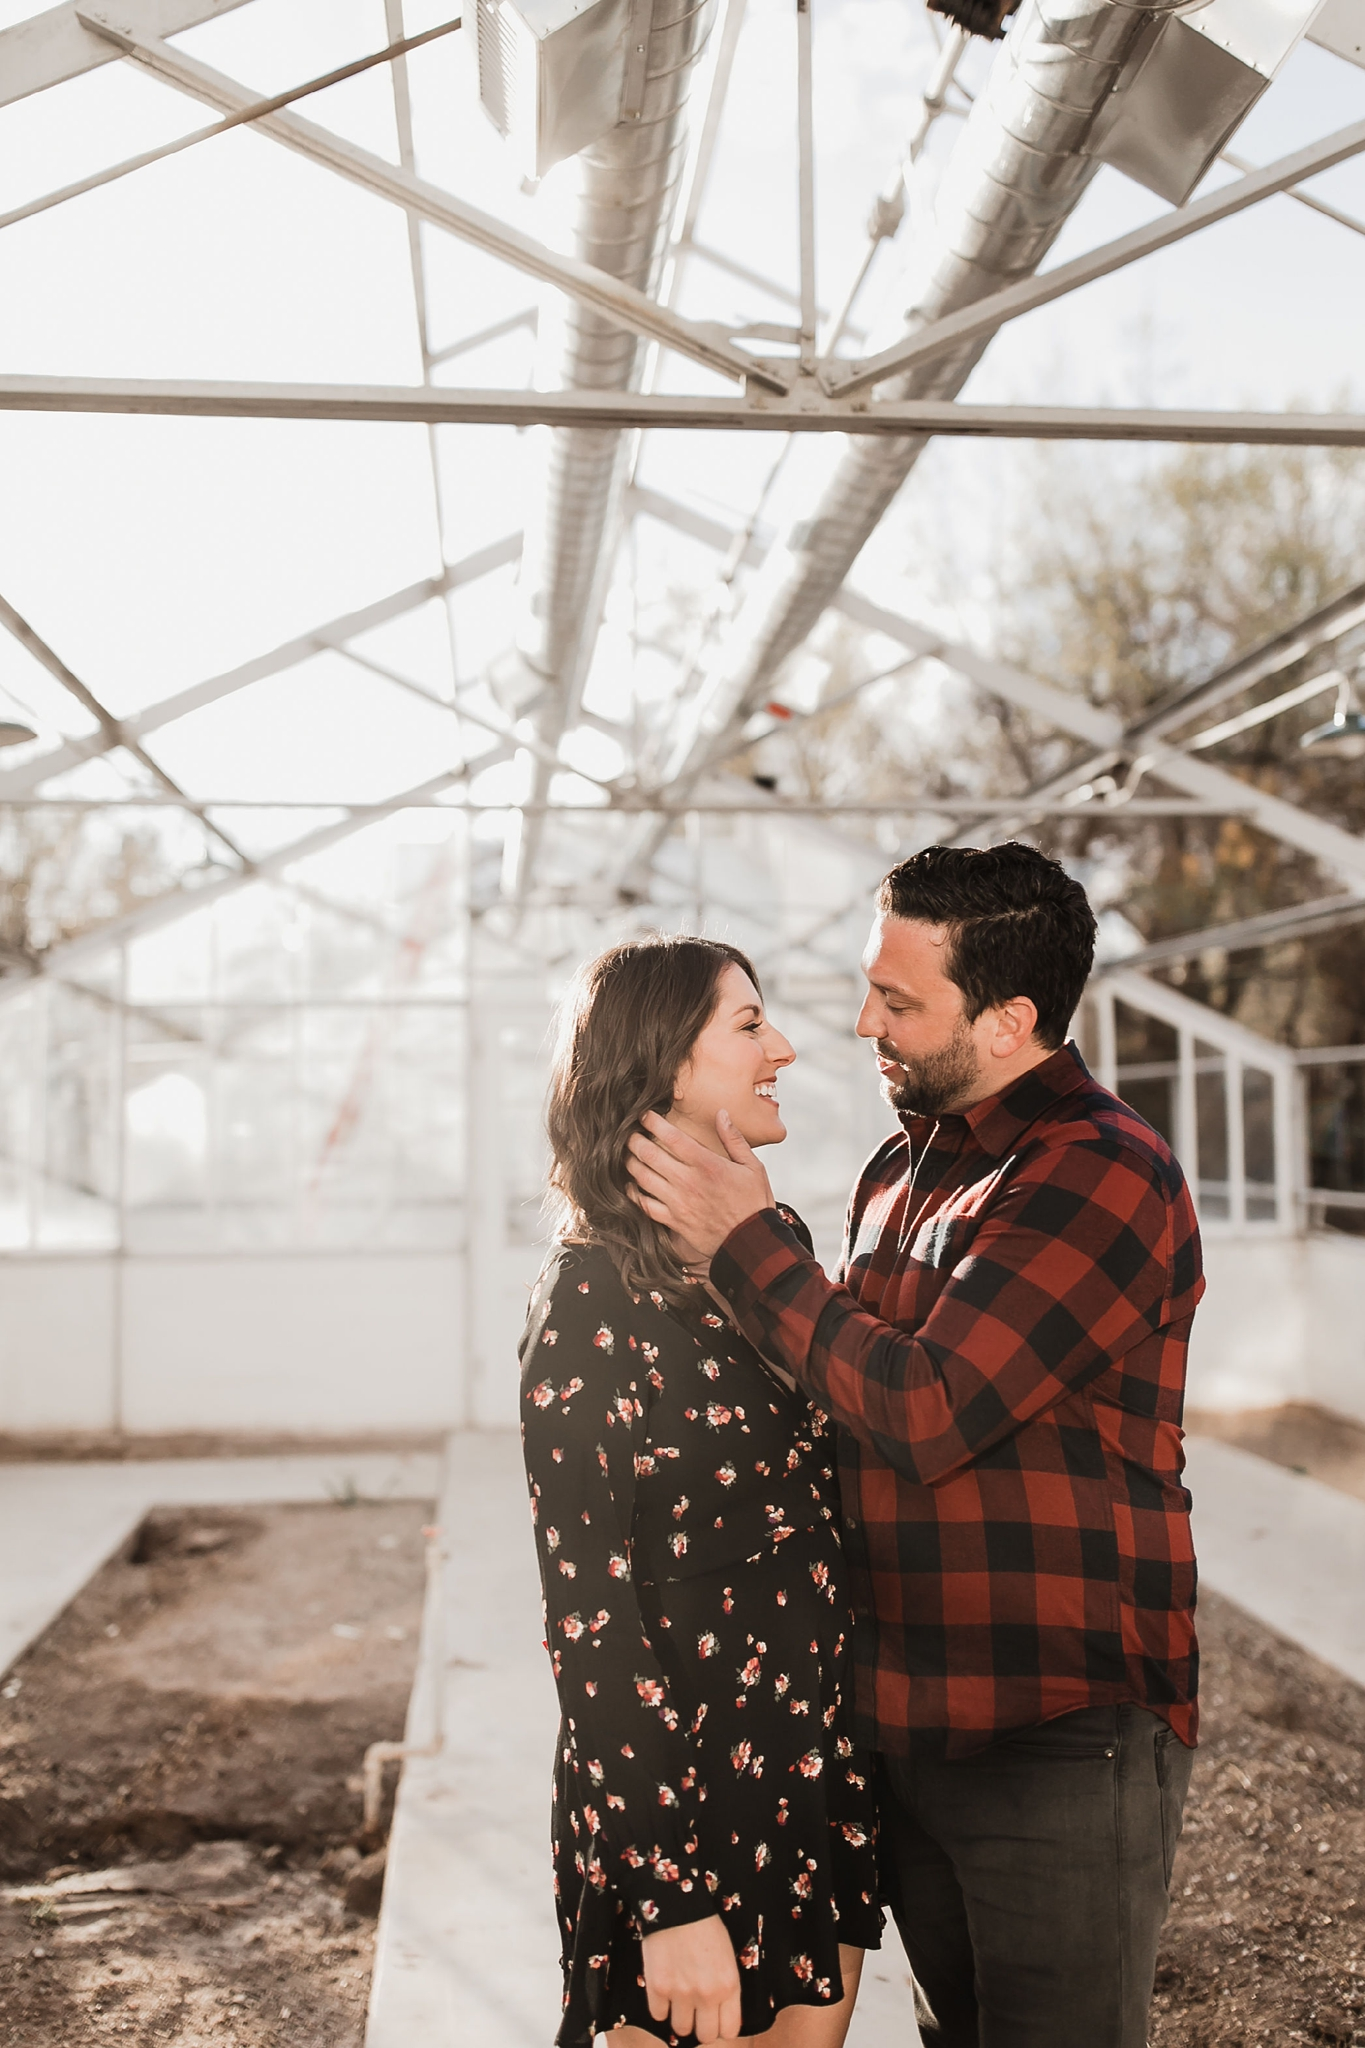 Alicia+lucia+photography+-+albuquerque+wedding+photographer+-+santa+fe+wedding+photography+-+new+mexico+wedding+photographer+-+new+mexico+wedding+-+new+mexico+engagement+-+los+poblanos+engagement+-+los+poblanos+wedding+-+fall+wedding_0007.jpg